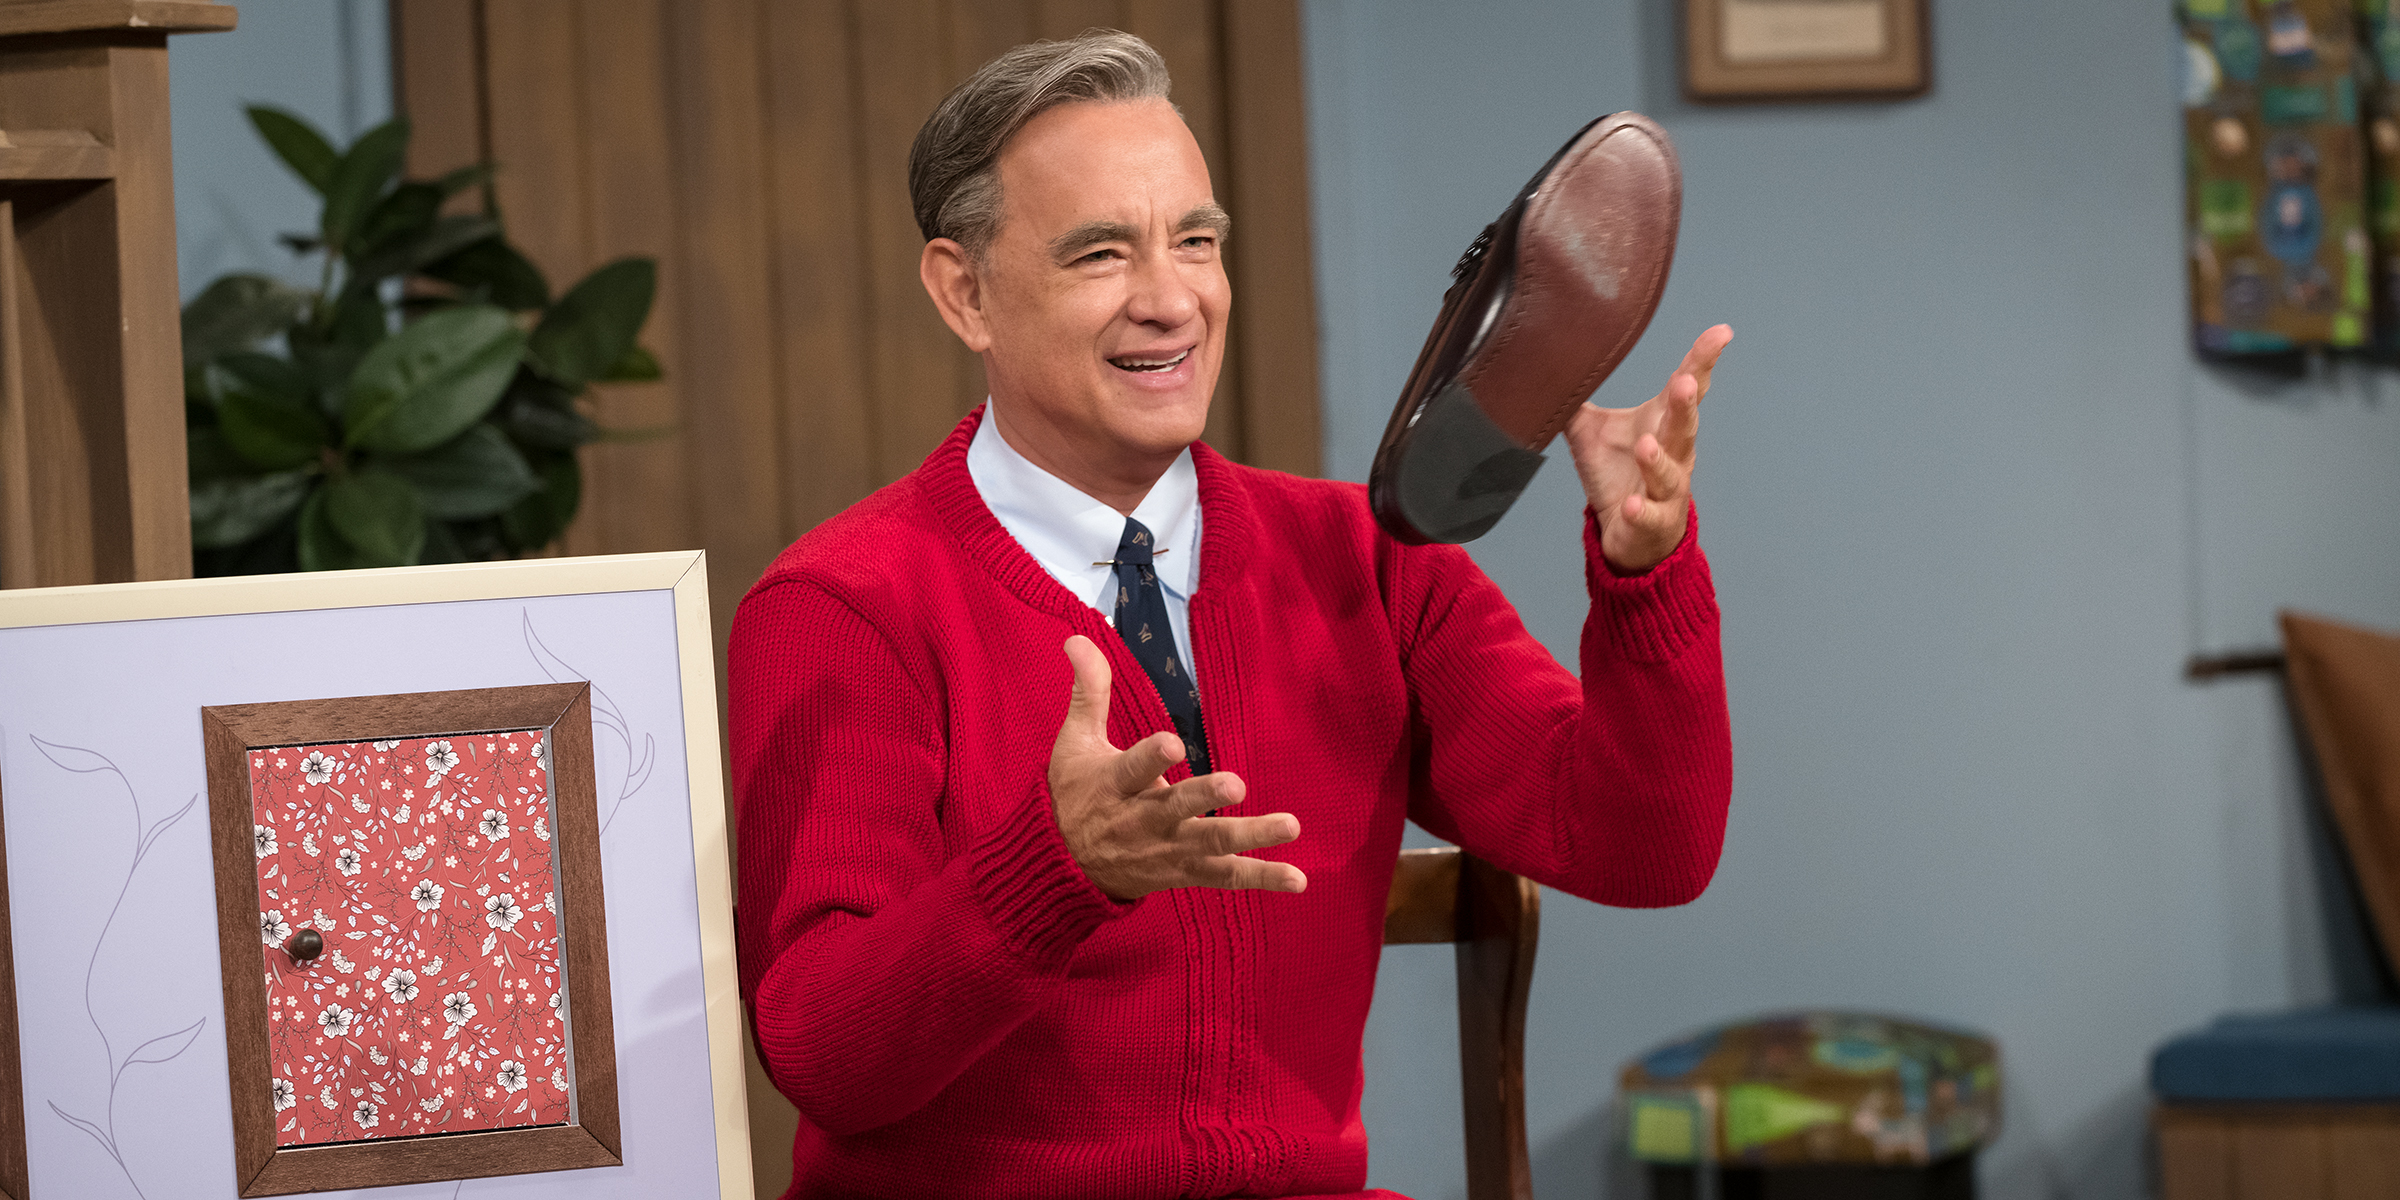 New Photo Of Tom Hanks As Mister Rogers Will Give You All The Feels